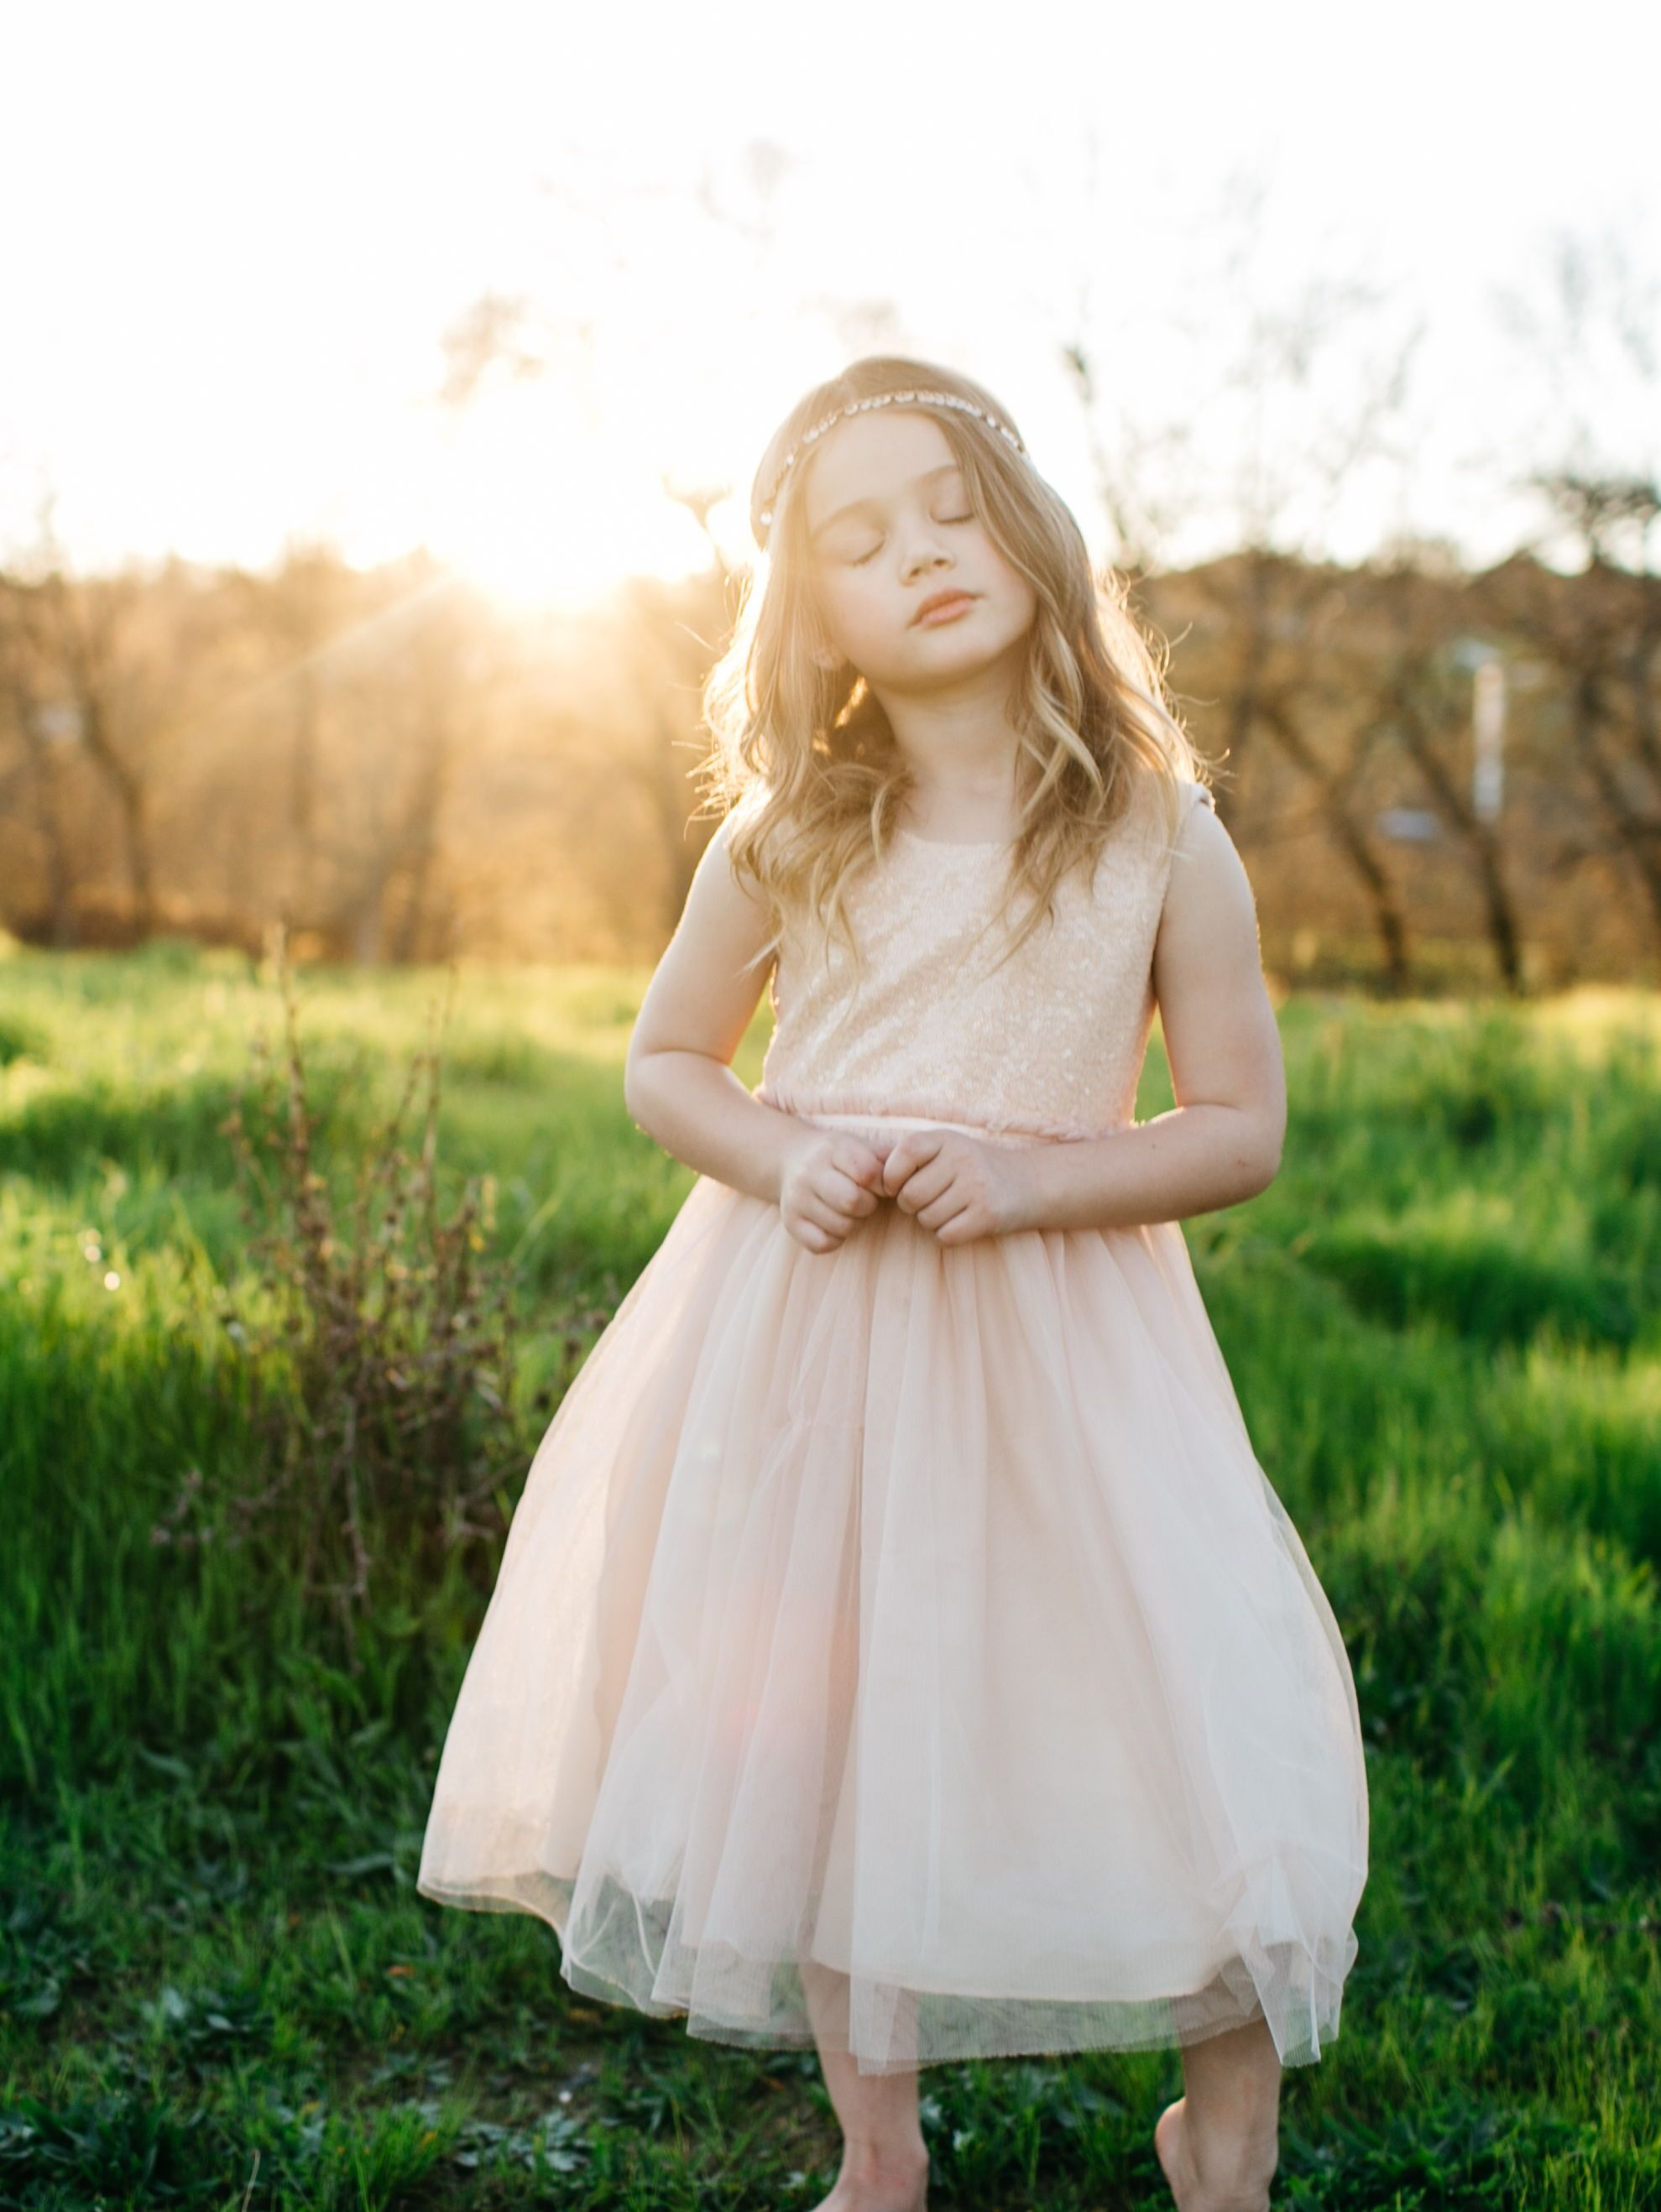 3b415c6c1 Jenny Yoo Flowergirl, The Rosalie flower girl dress has a sequined top and a  soft tulle tea length skirt. The sleeveless top and A-line skirt maintains a  ...